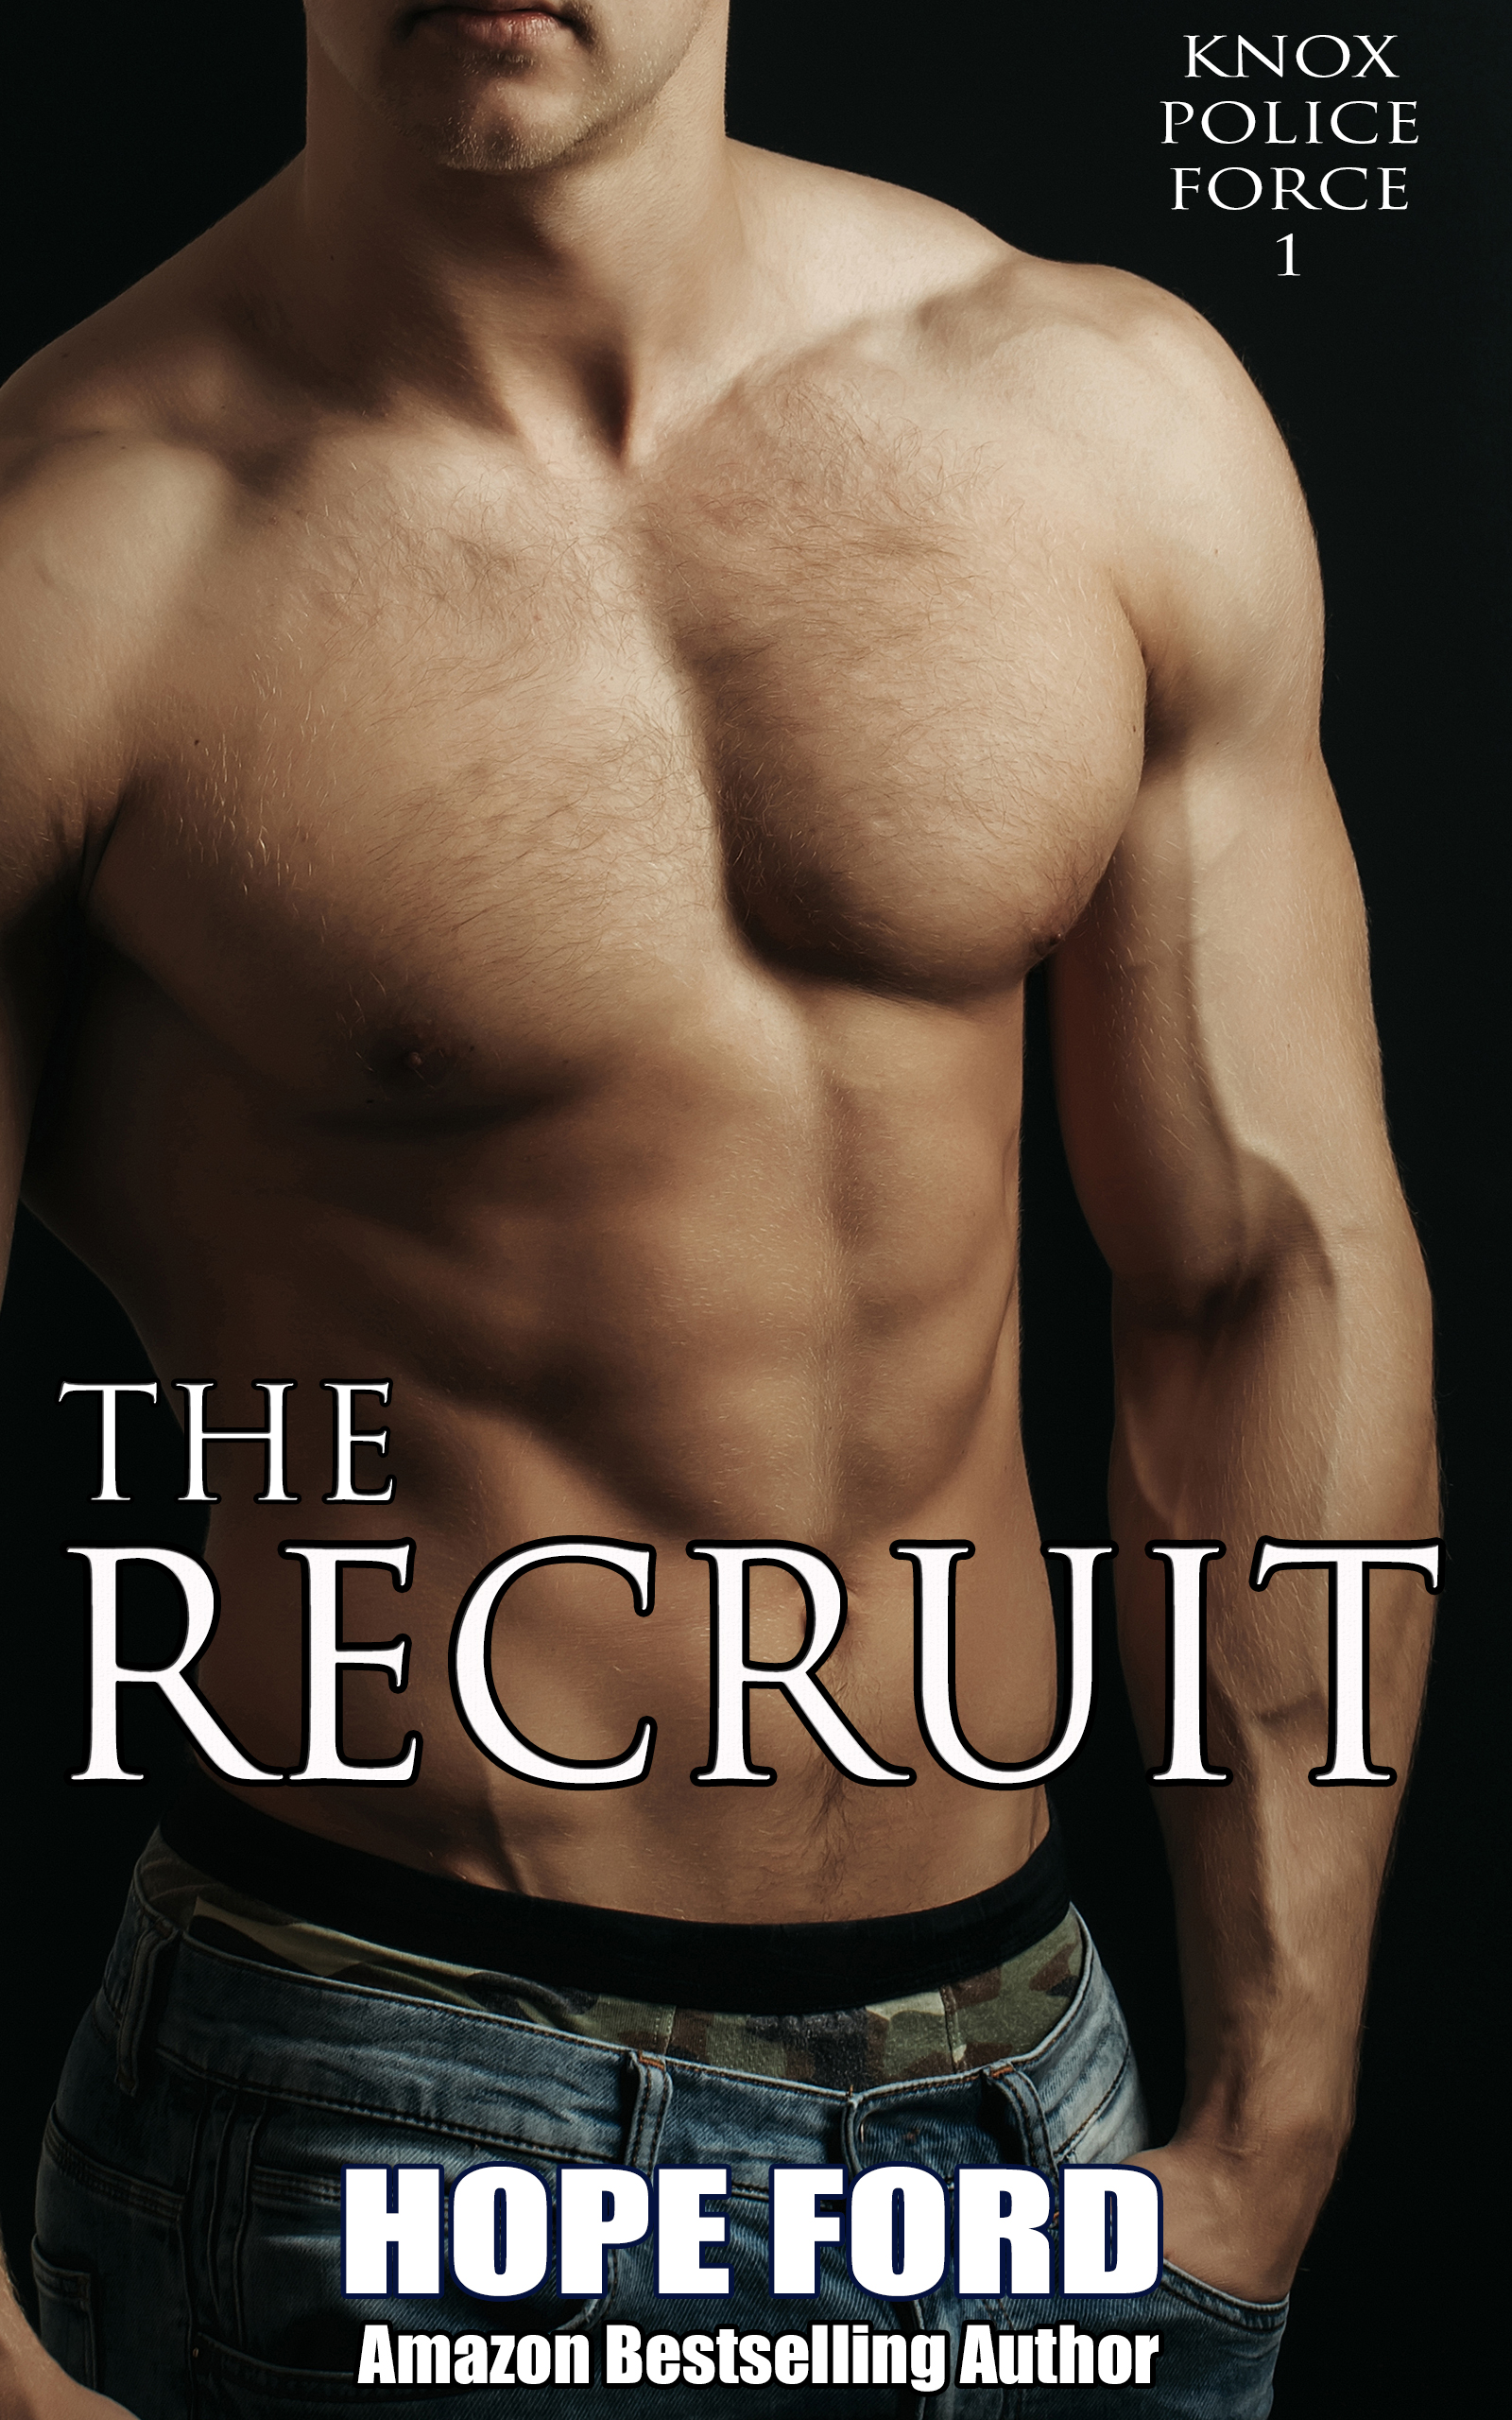 The Recruit is Book 1 in the Knox Police Force Series by Hope Ford.